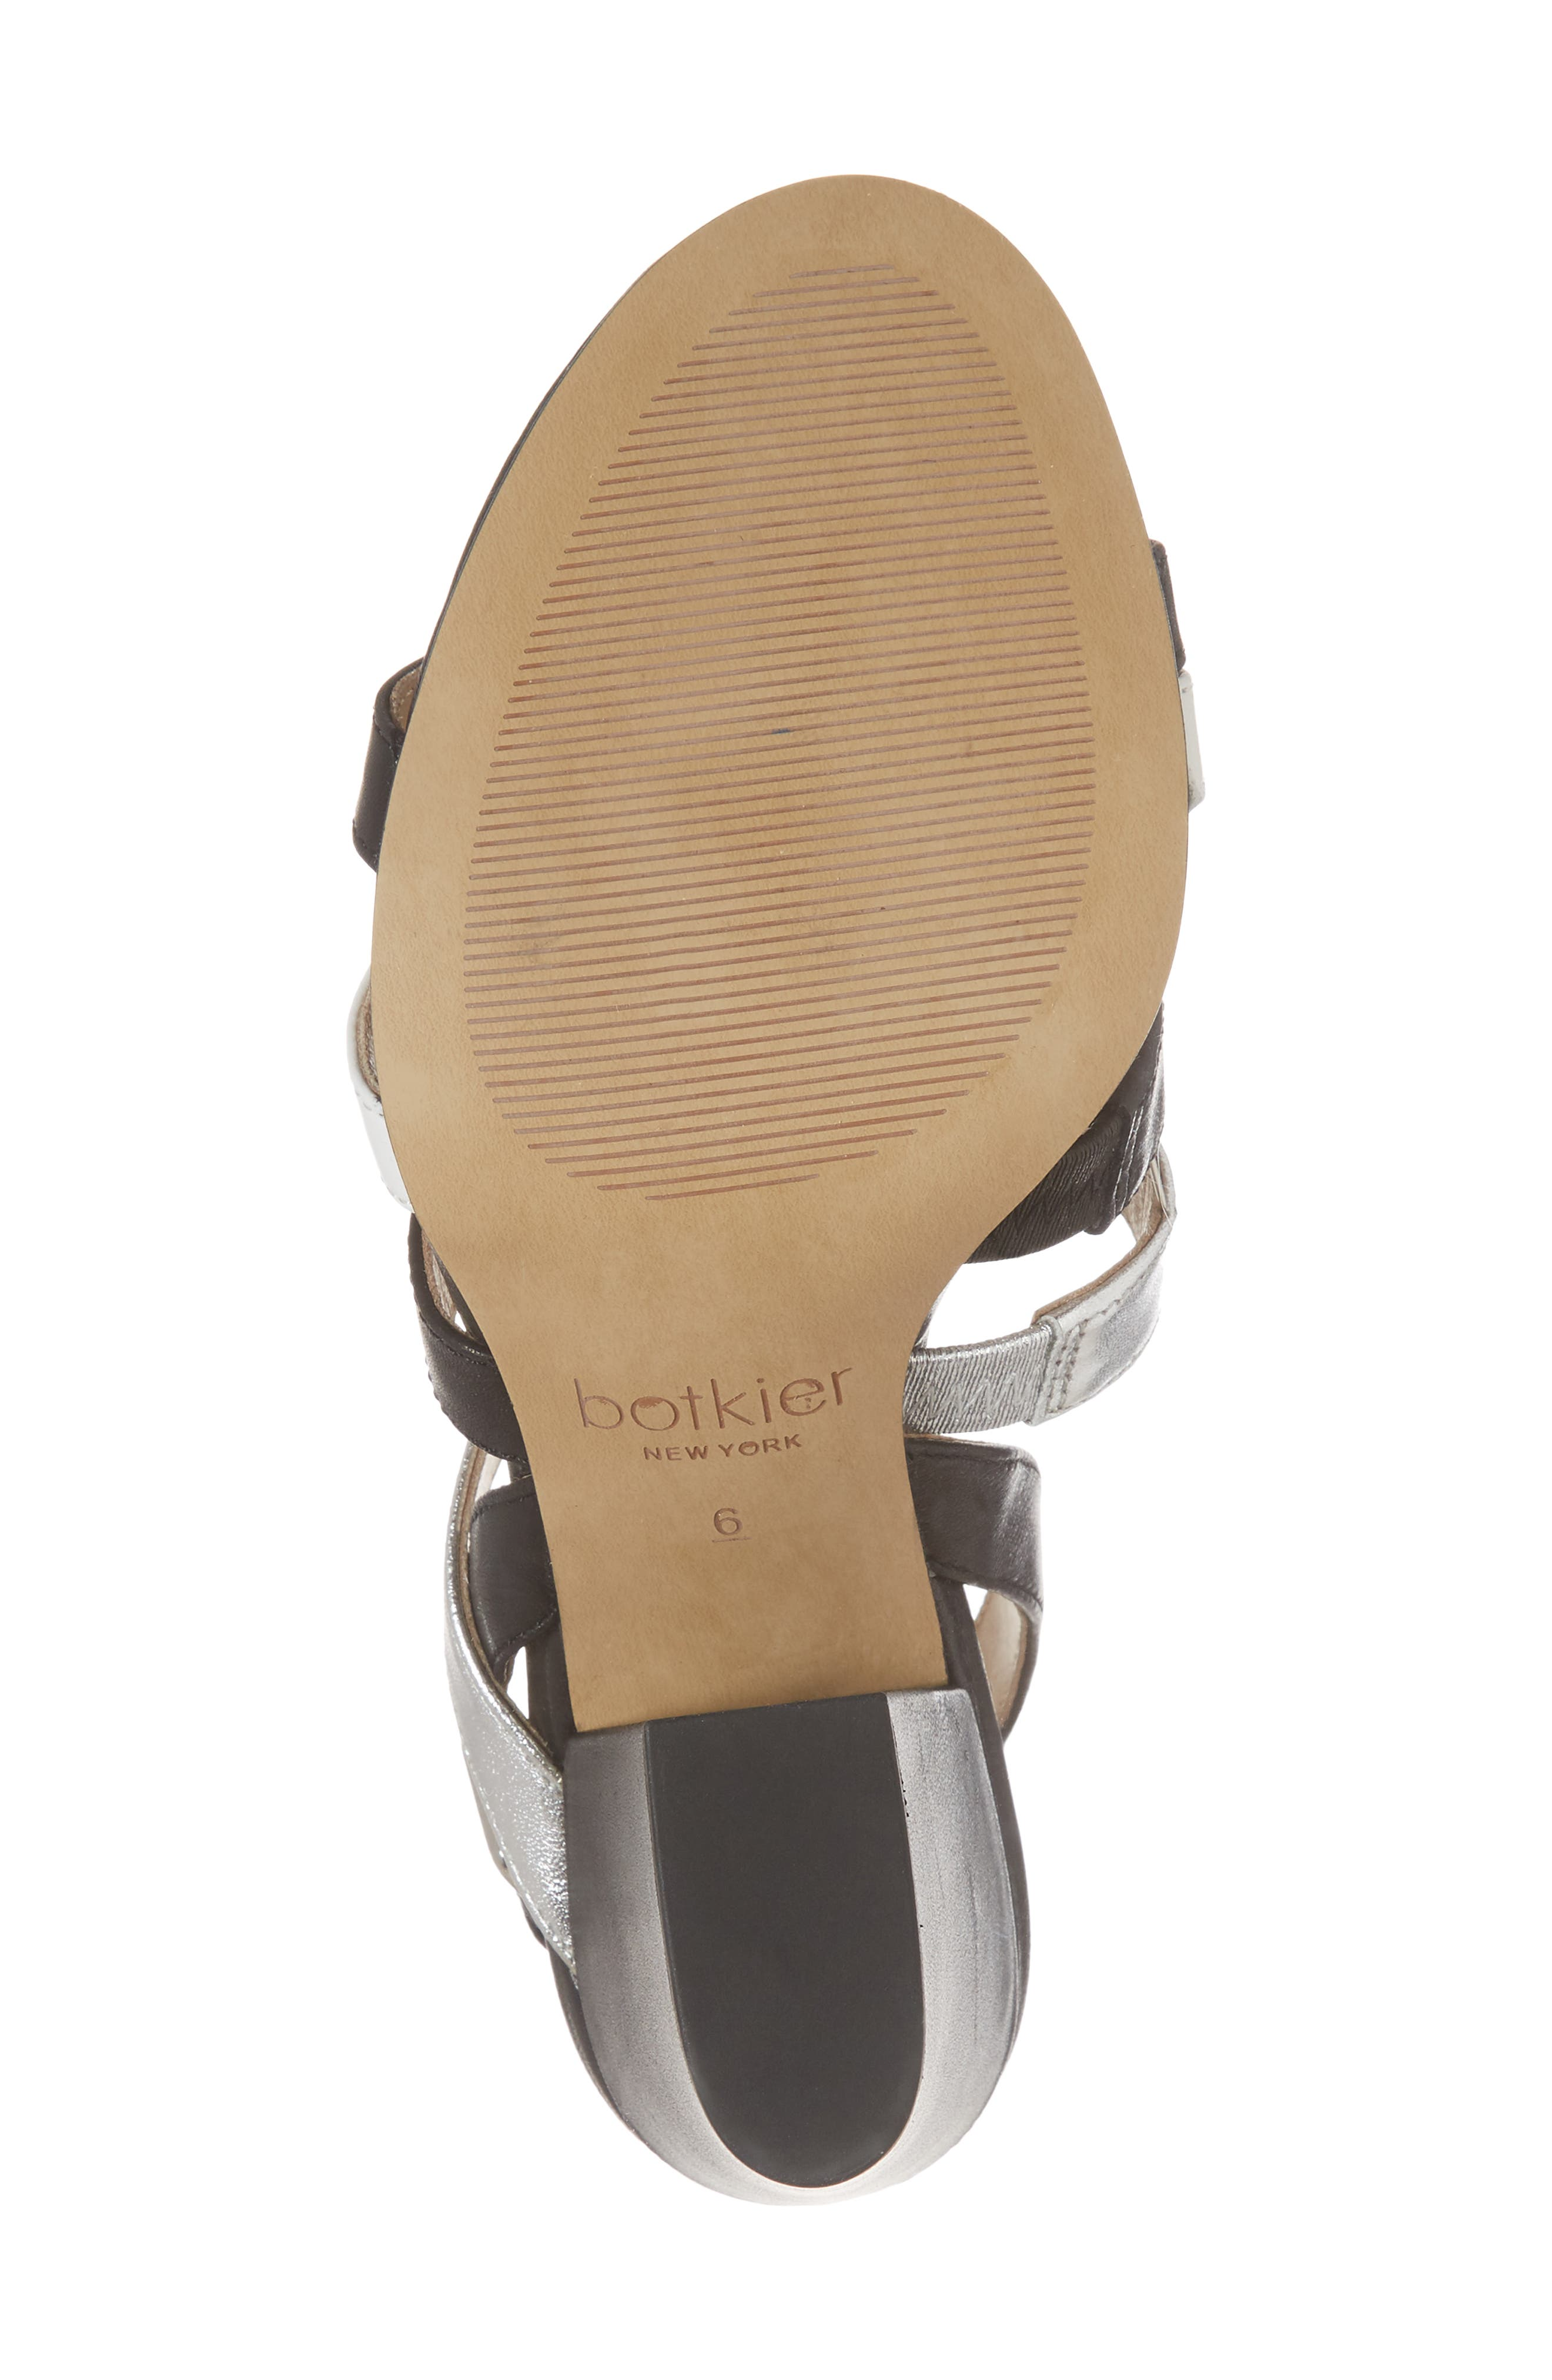 Sera Sandal,                             Alternate thumbnail 6, color,                             Black Multi Leather